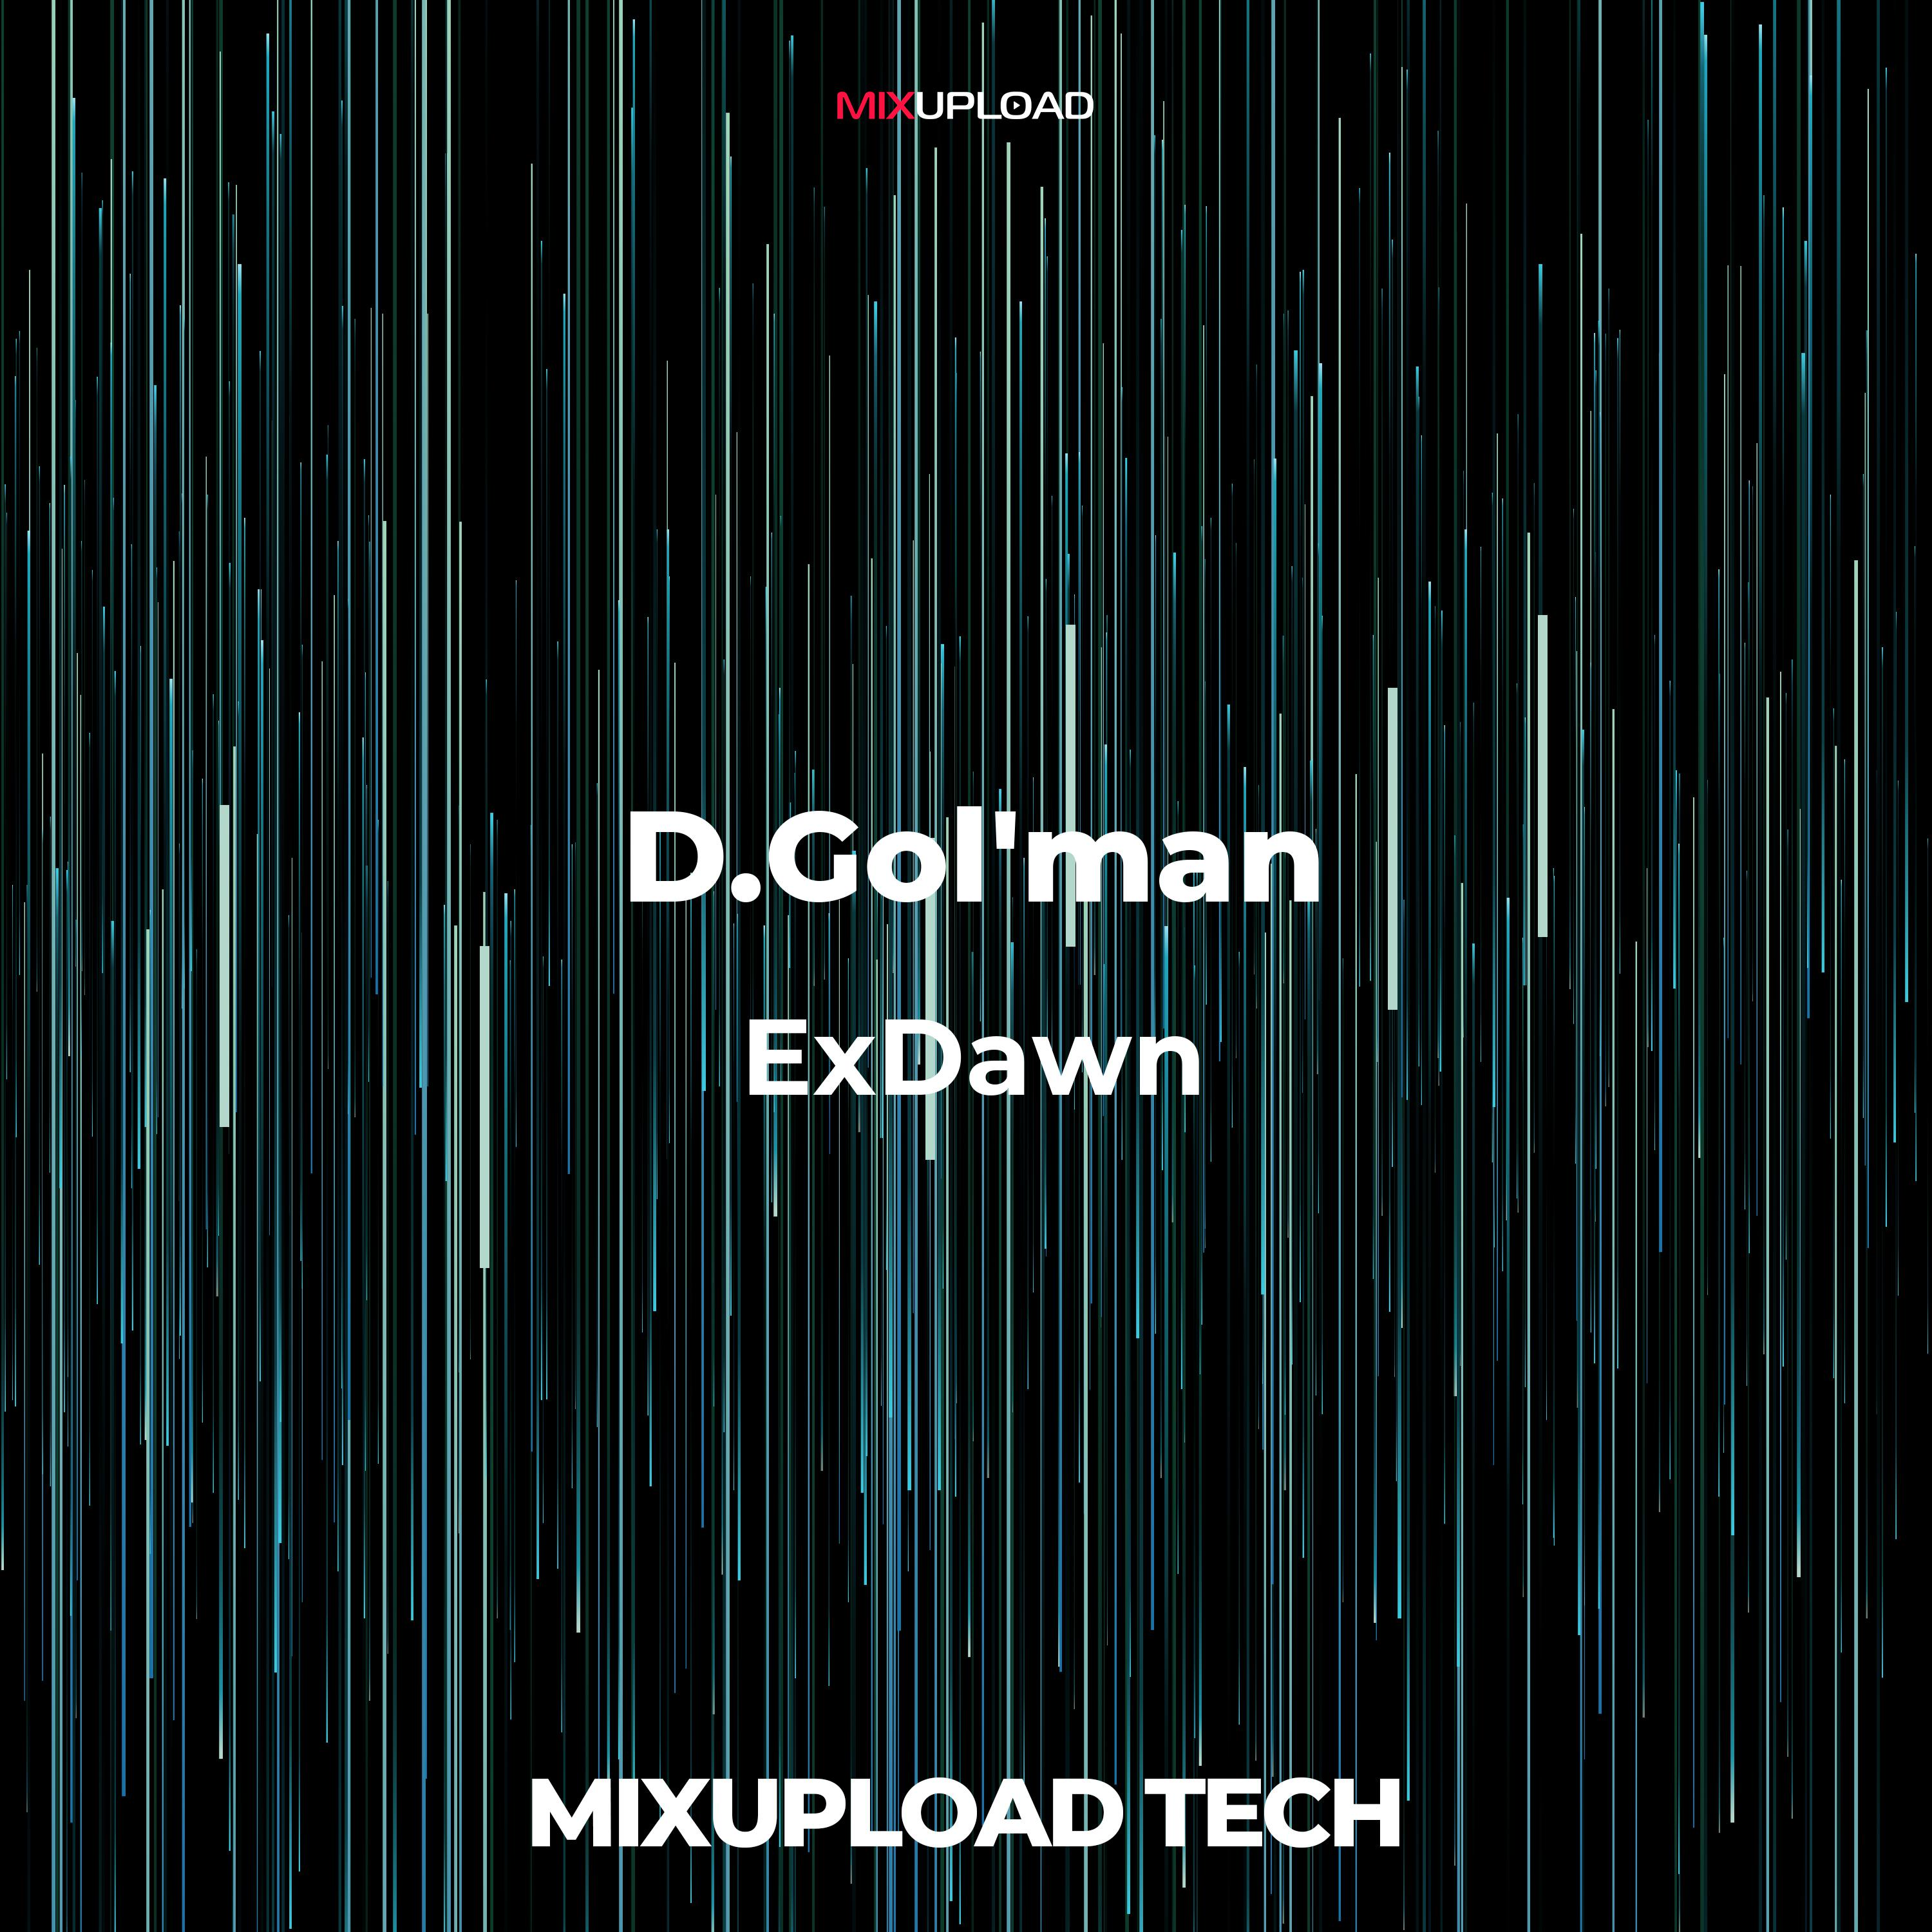 D.Gol\'man - ExDawn (Original mix)